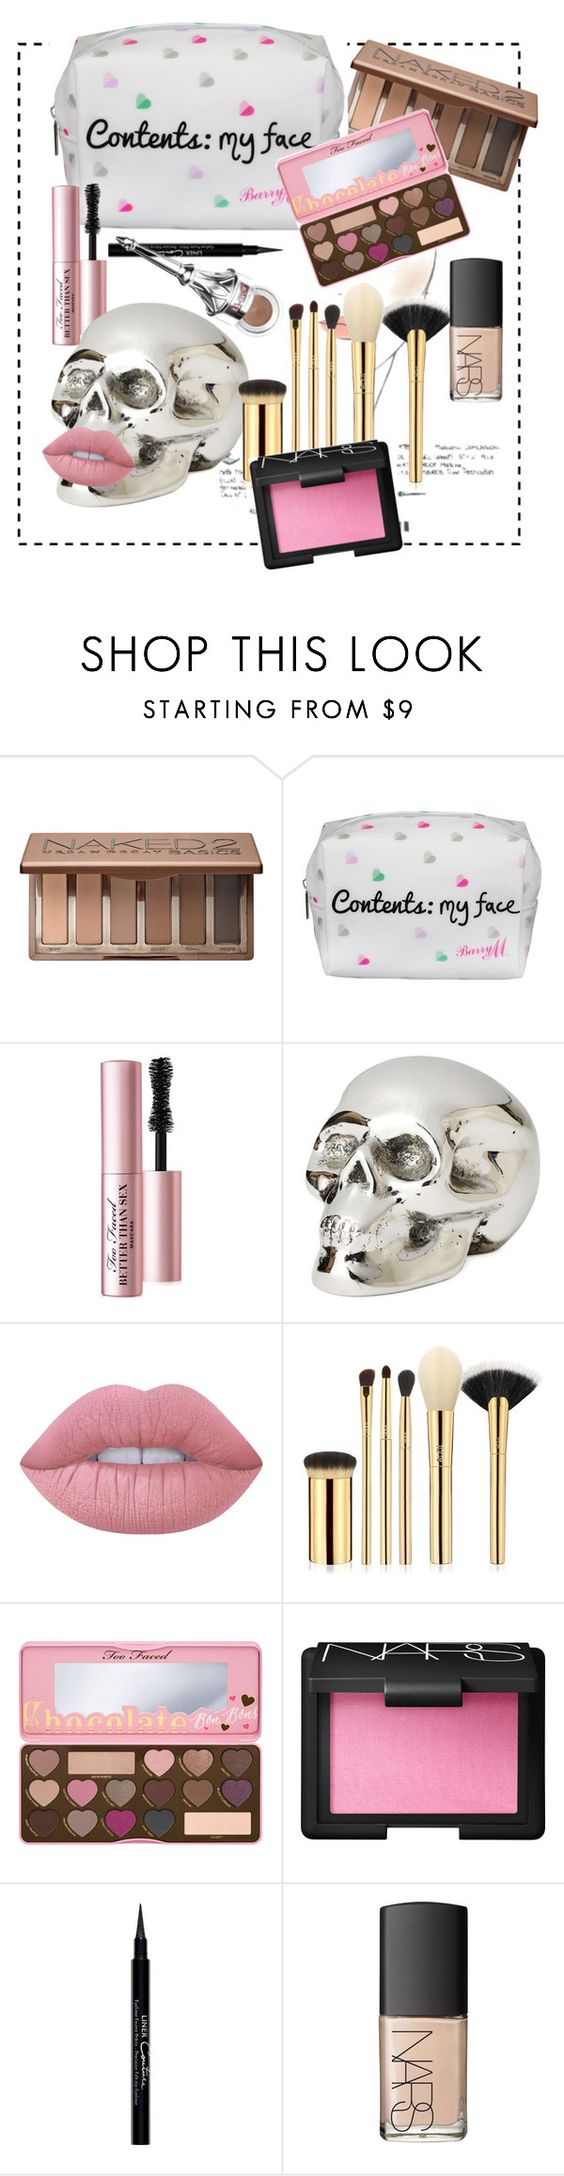 """Makeup pack"" by aneta-sundova on Polyvore featuring beauty, Urban Decay, Lipsy, Too Faced Cosmetics, Chanel, Jan Barboglio, Lime Crime, tarte, NARS Cosmetics and Givenchy"